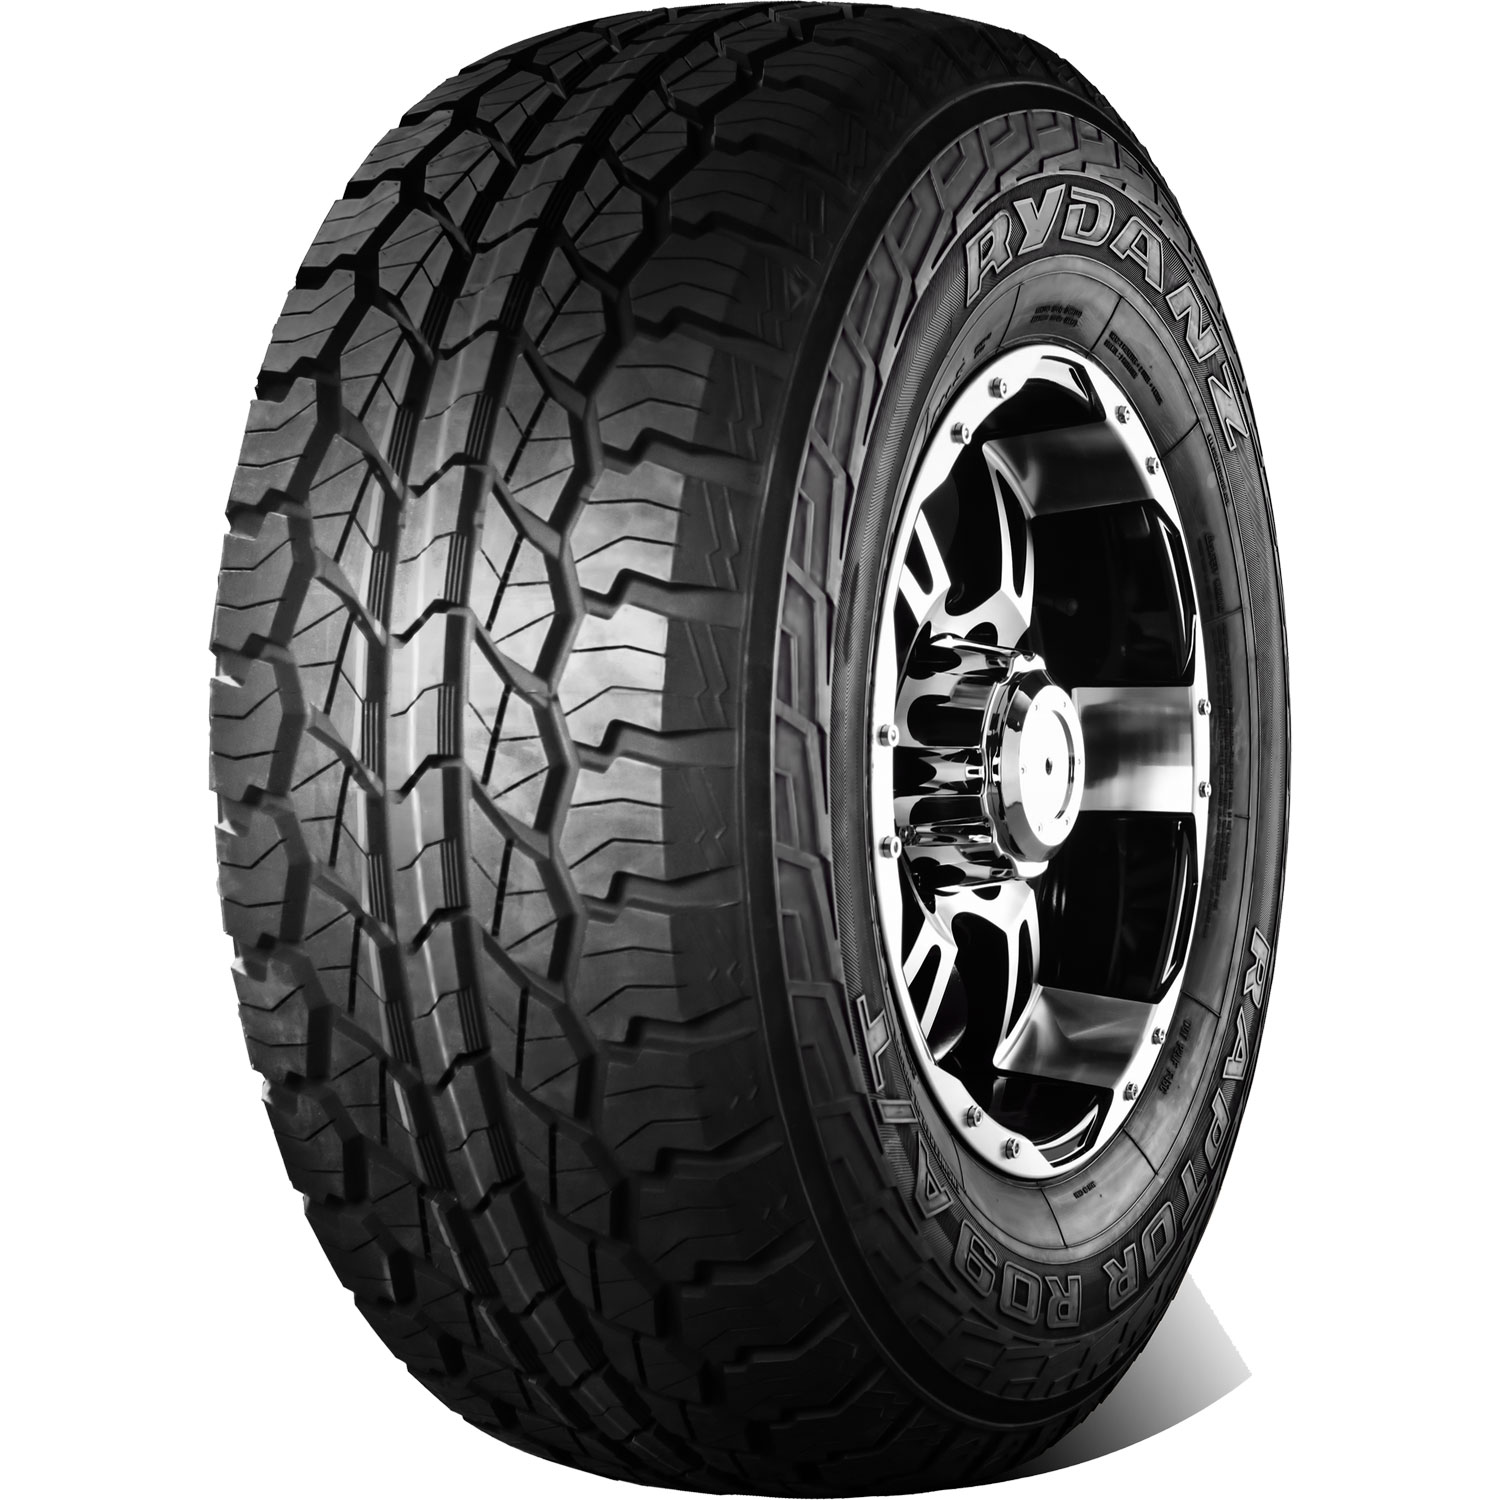 Raptor R09 AT - 30x9.5R15LT 104Q 6 Ply